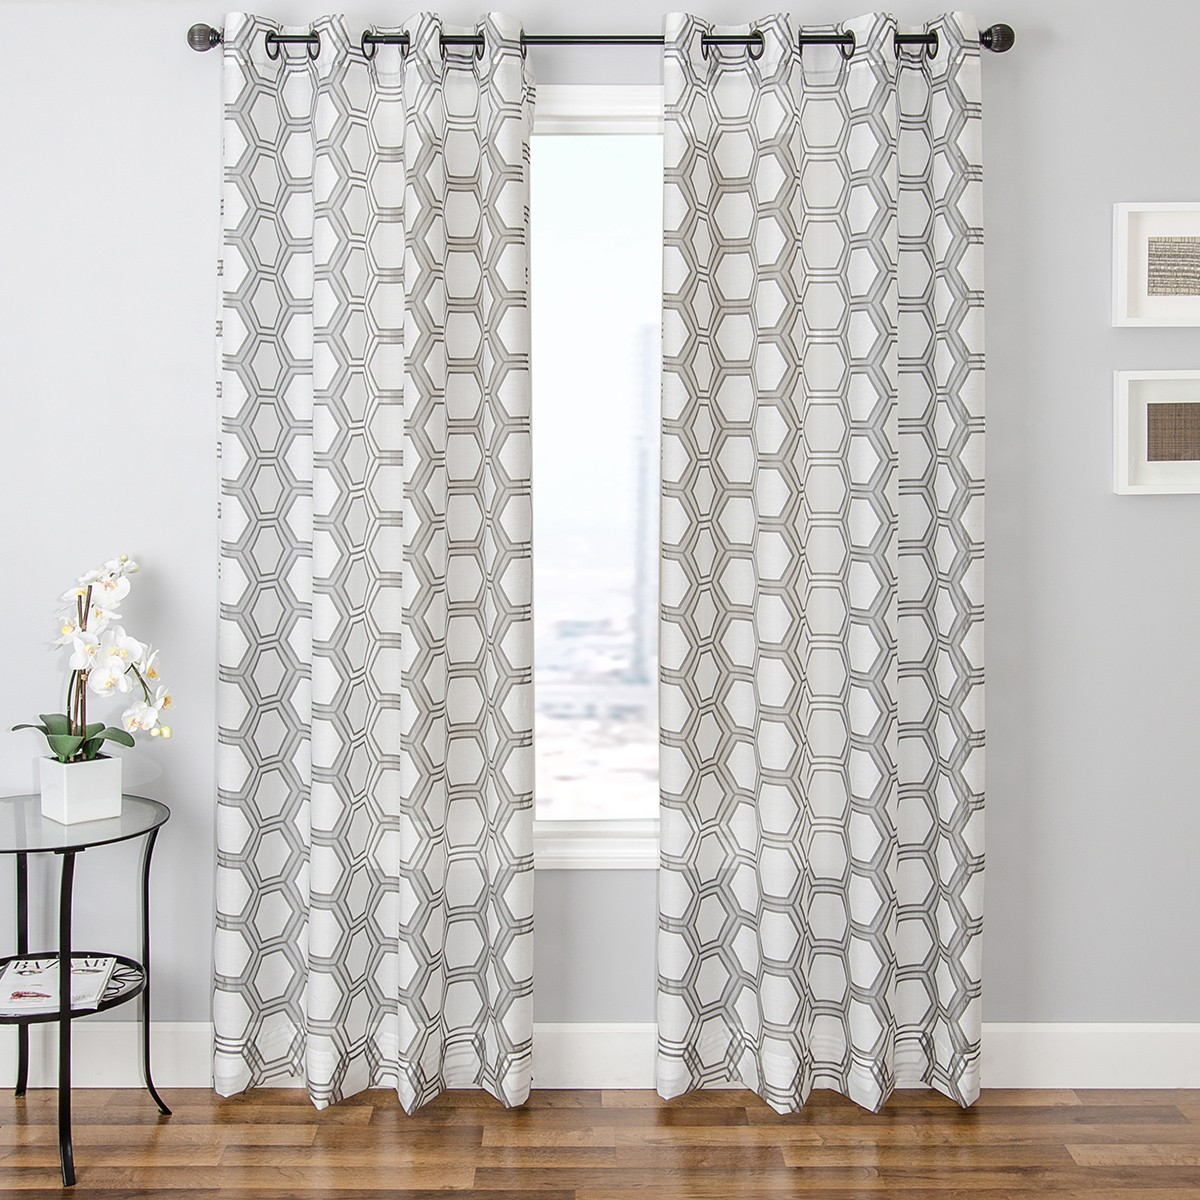 Gardinen Muster Elegant White Patterned Curtains | Homesfeed